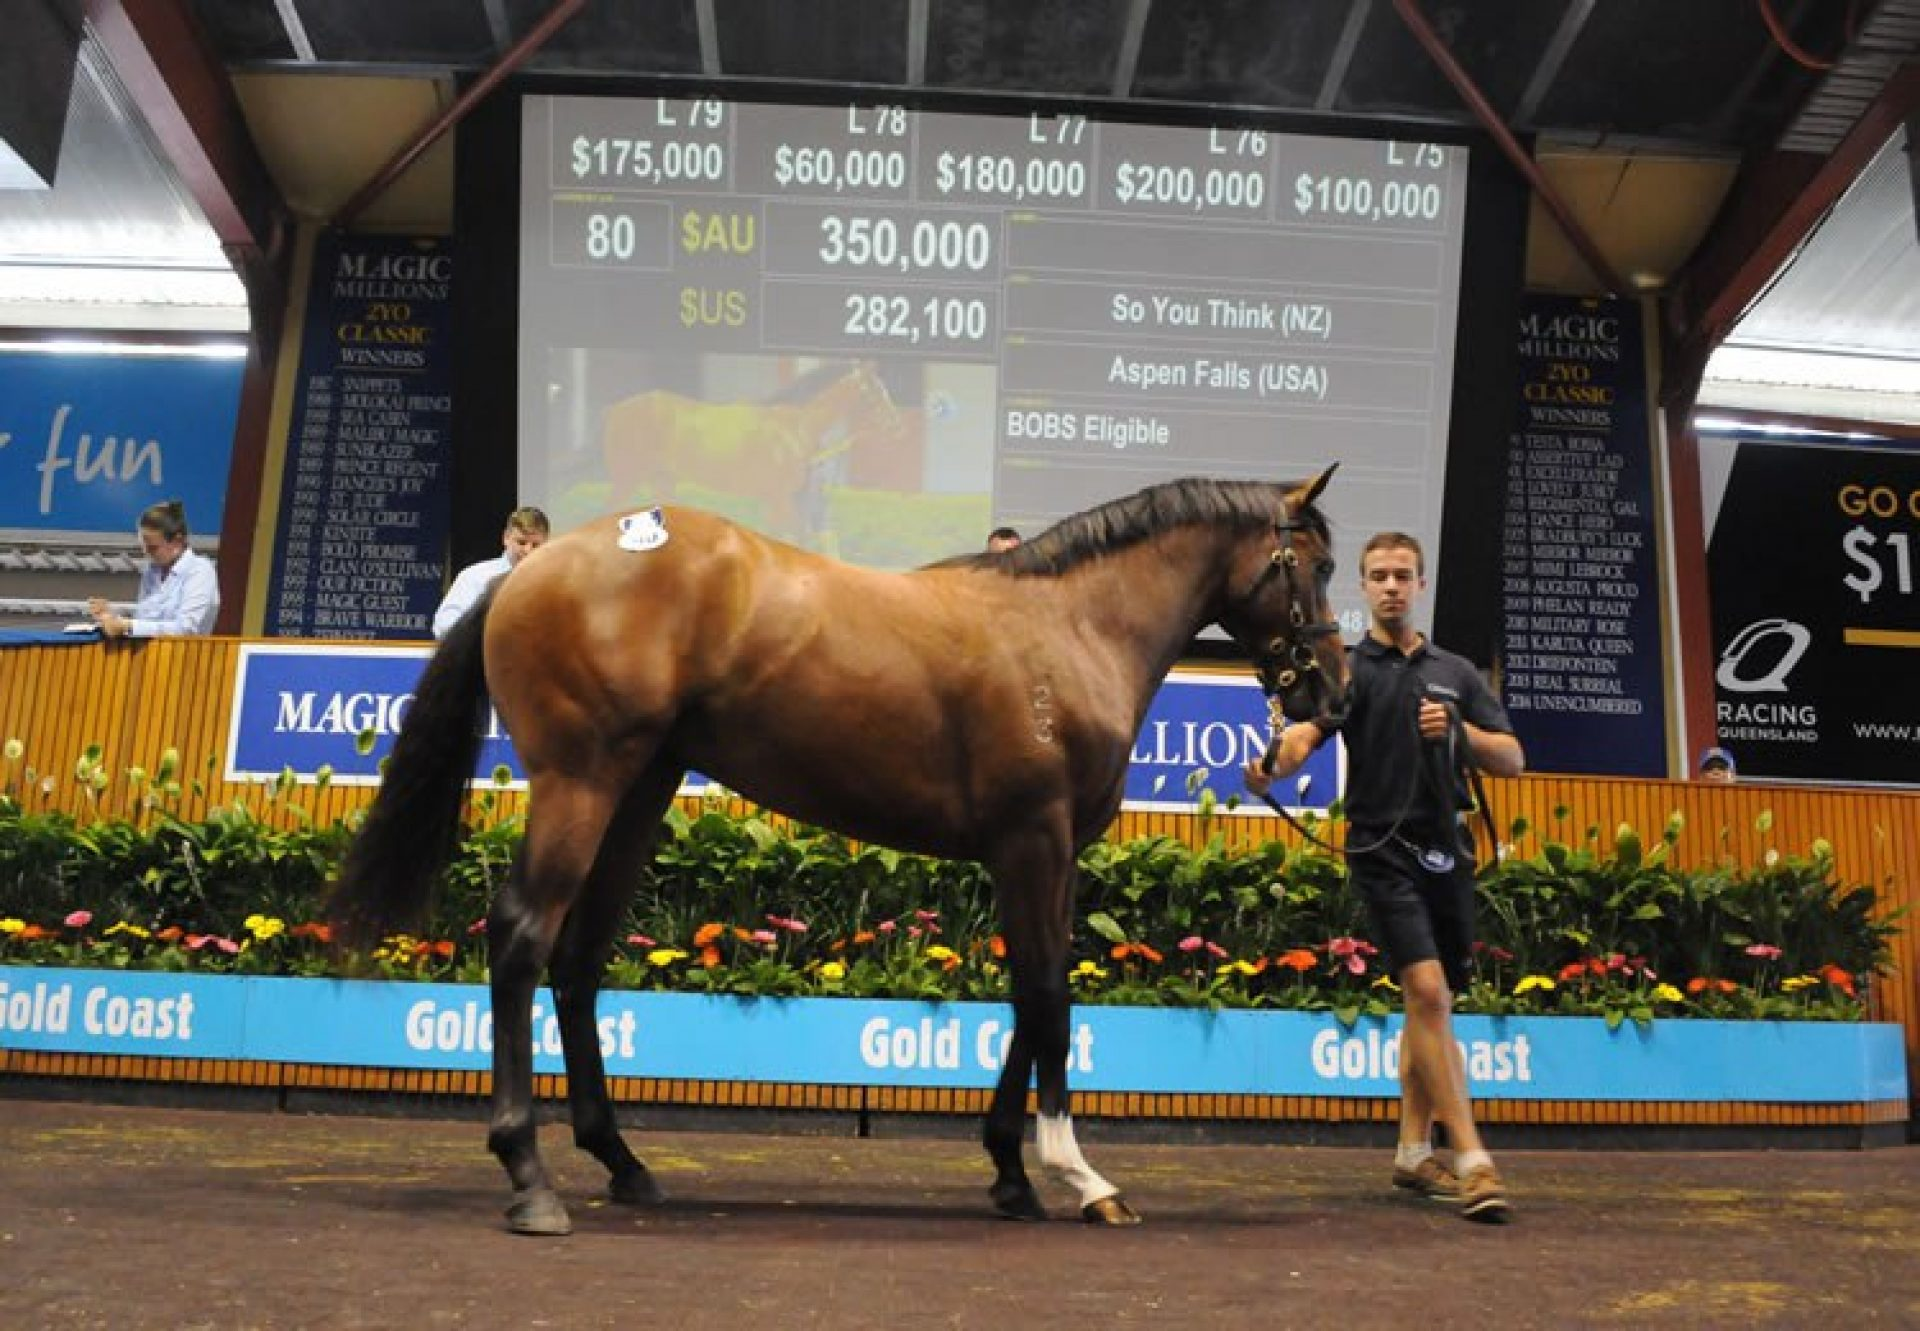 So You Think ex Aspen Falls colt selling at Magic Millions